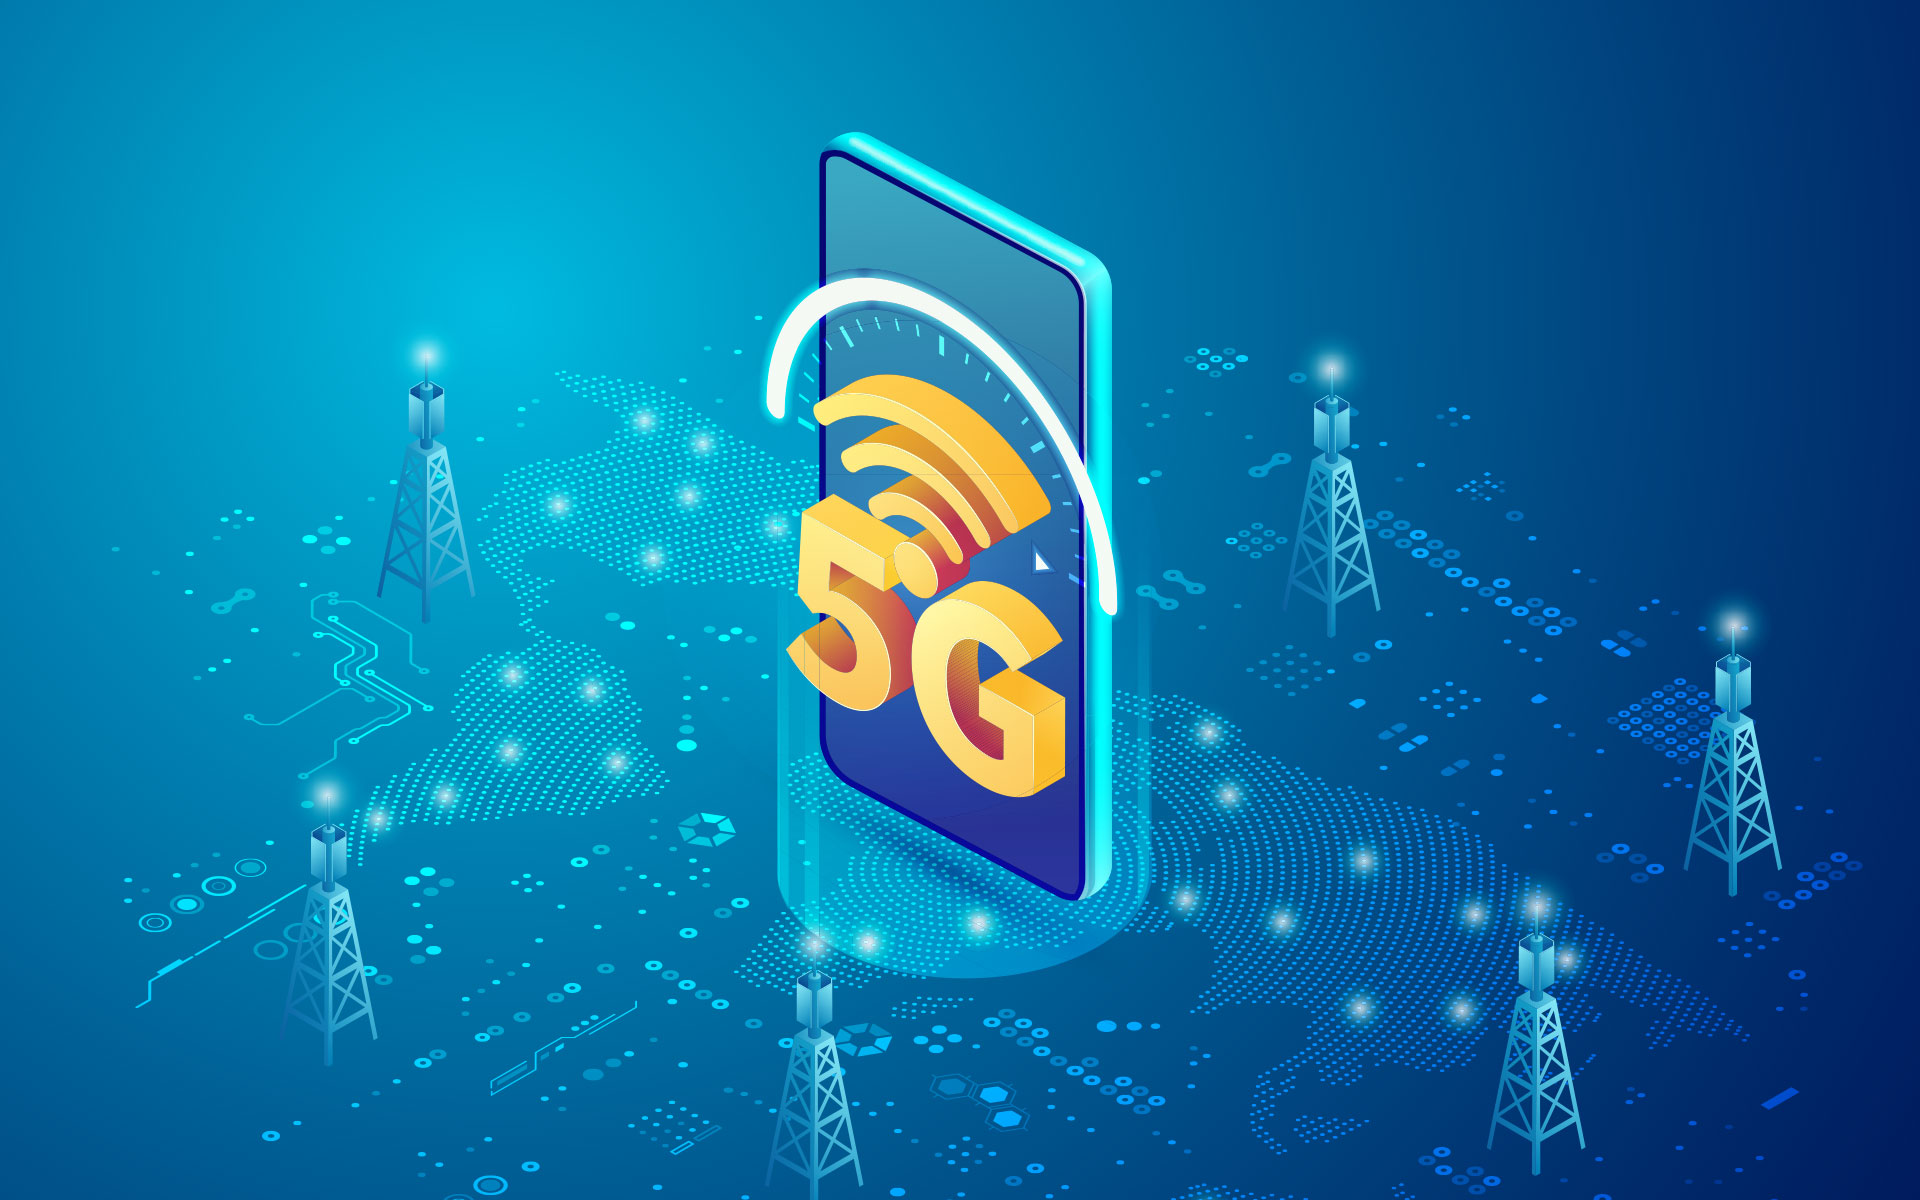 5G Standards – Should Telecoms Follow?